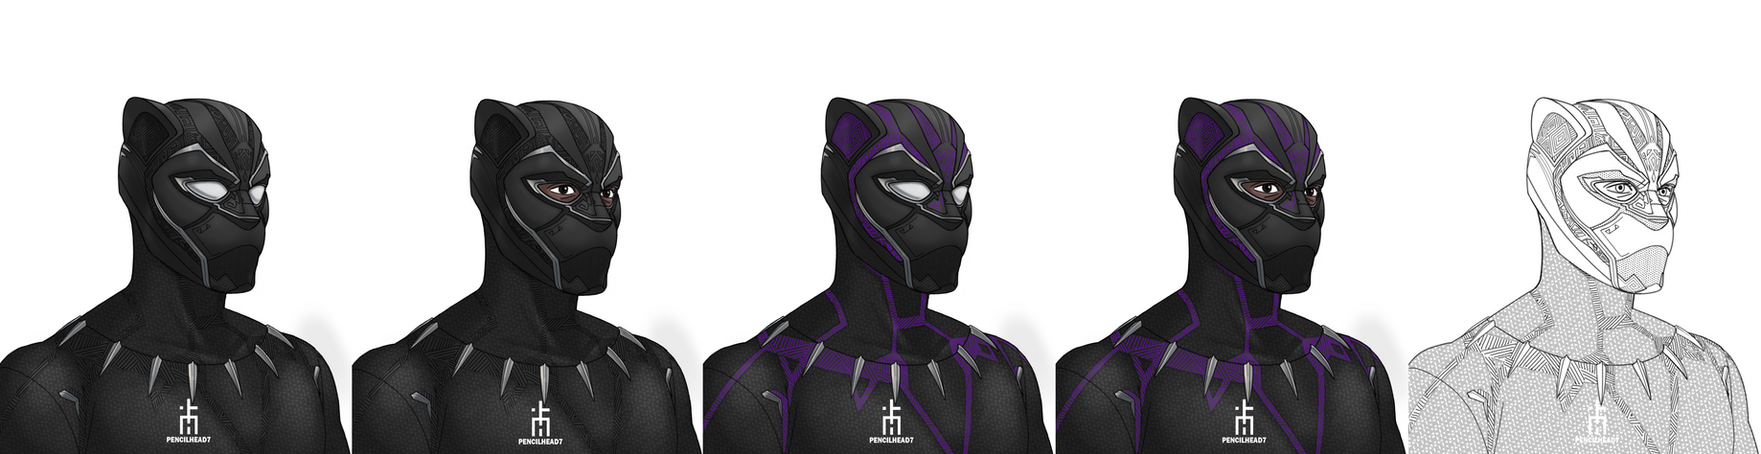 Black Panther New Suit by pencilHead7